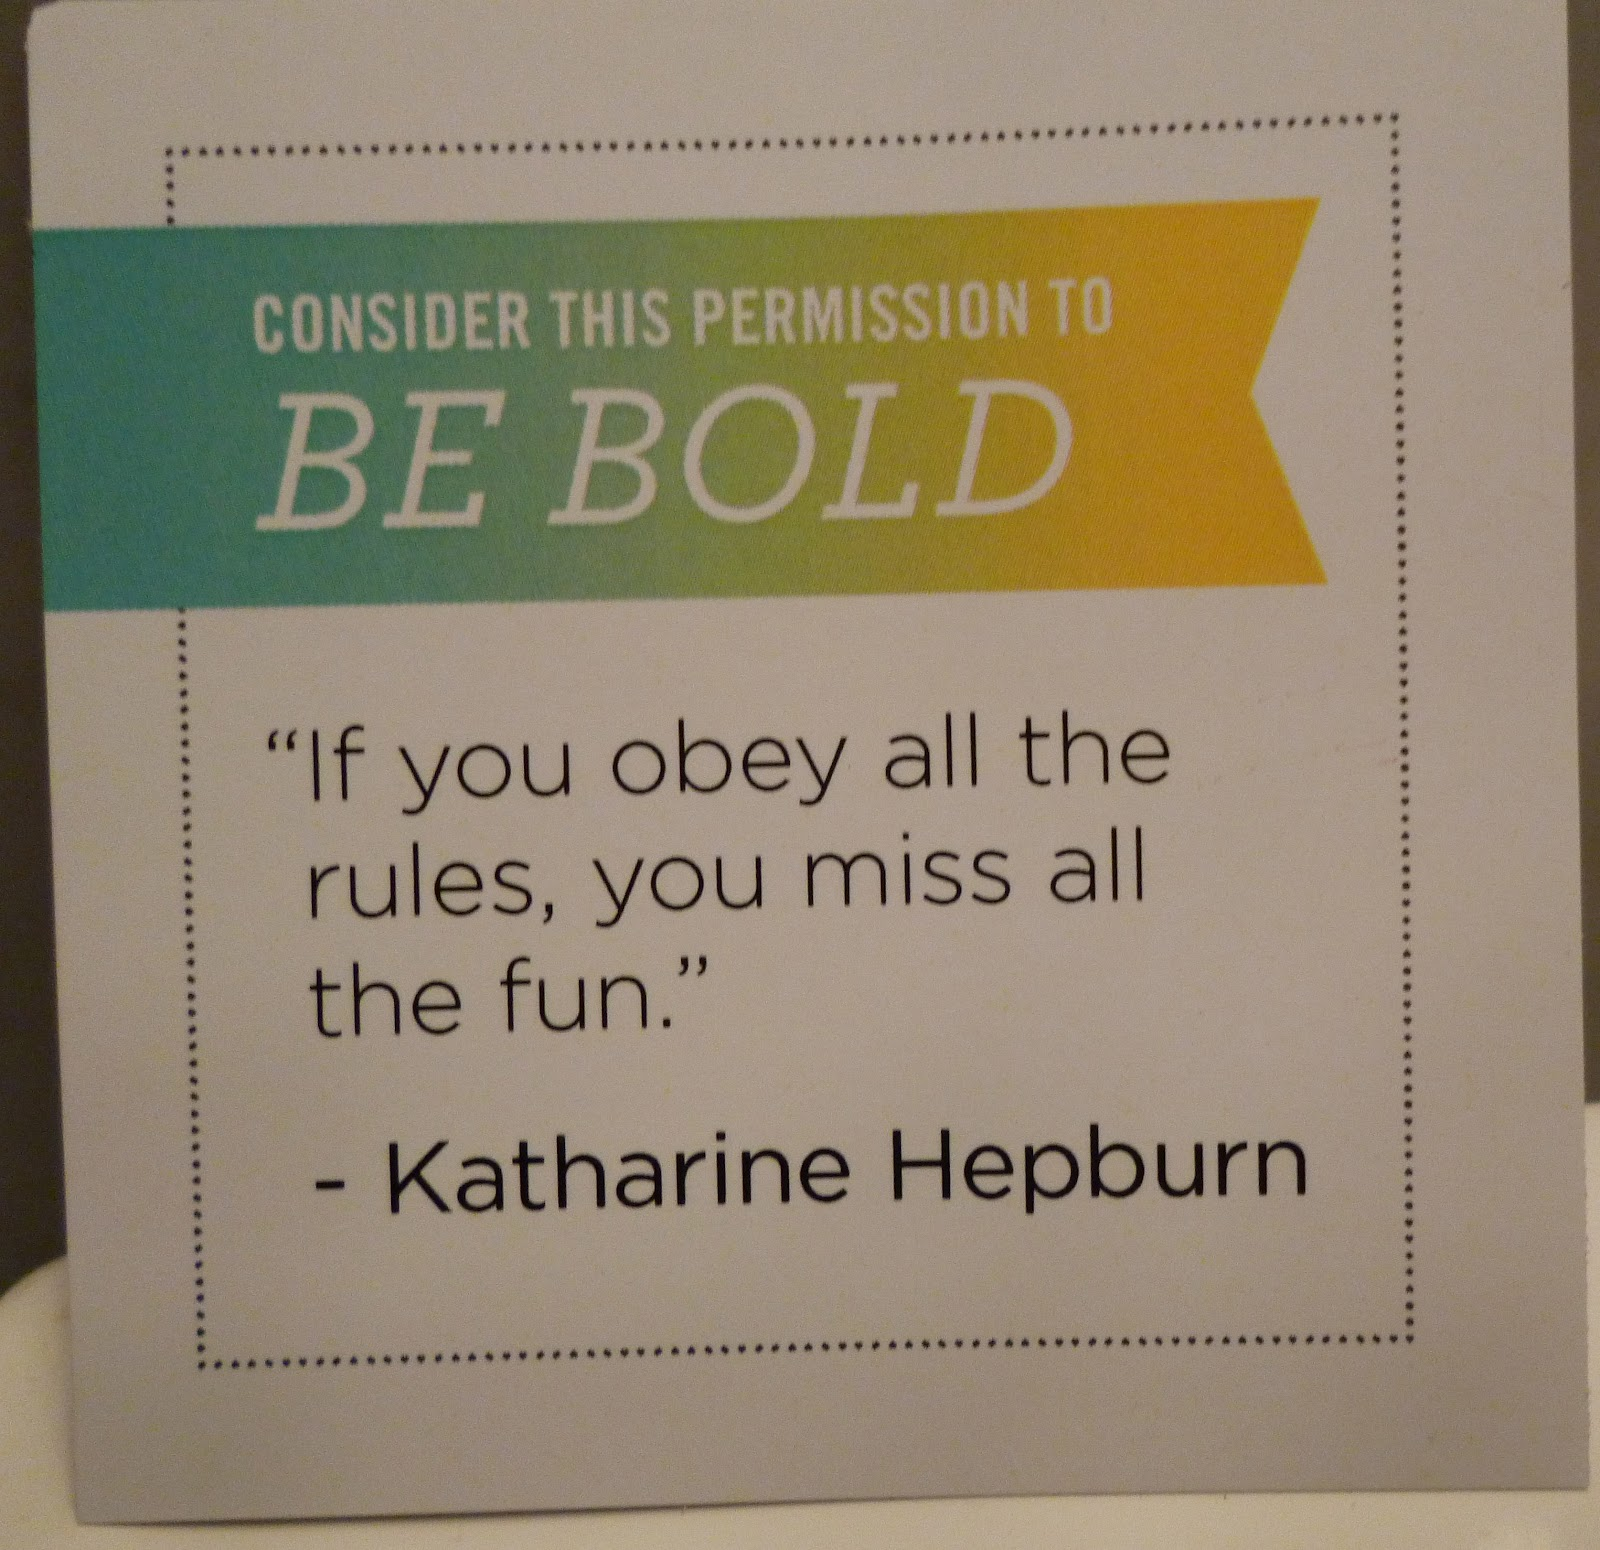 Consider this your permission to BE BOLD. If you obey all the rules, you miss all the fun. Katherine Hepburn